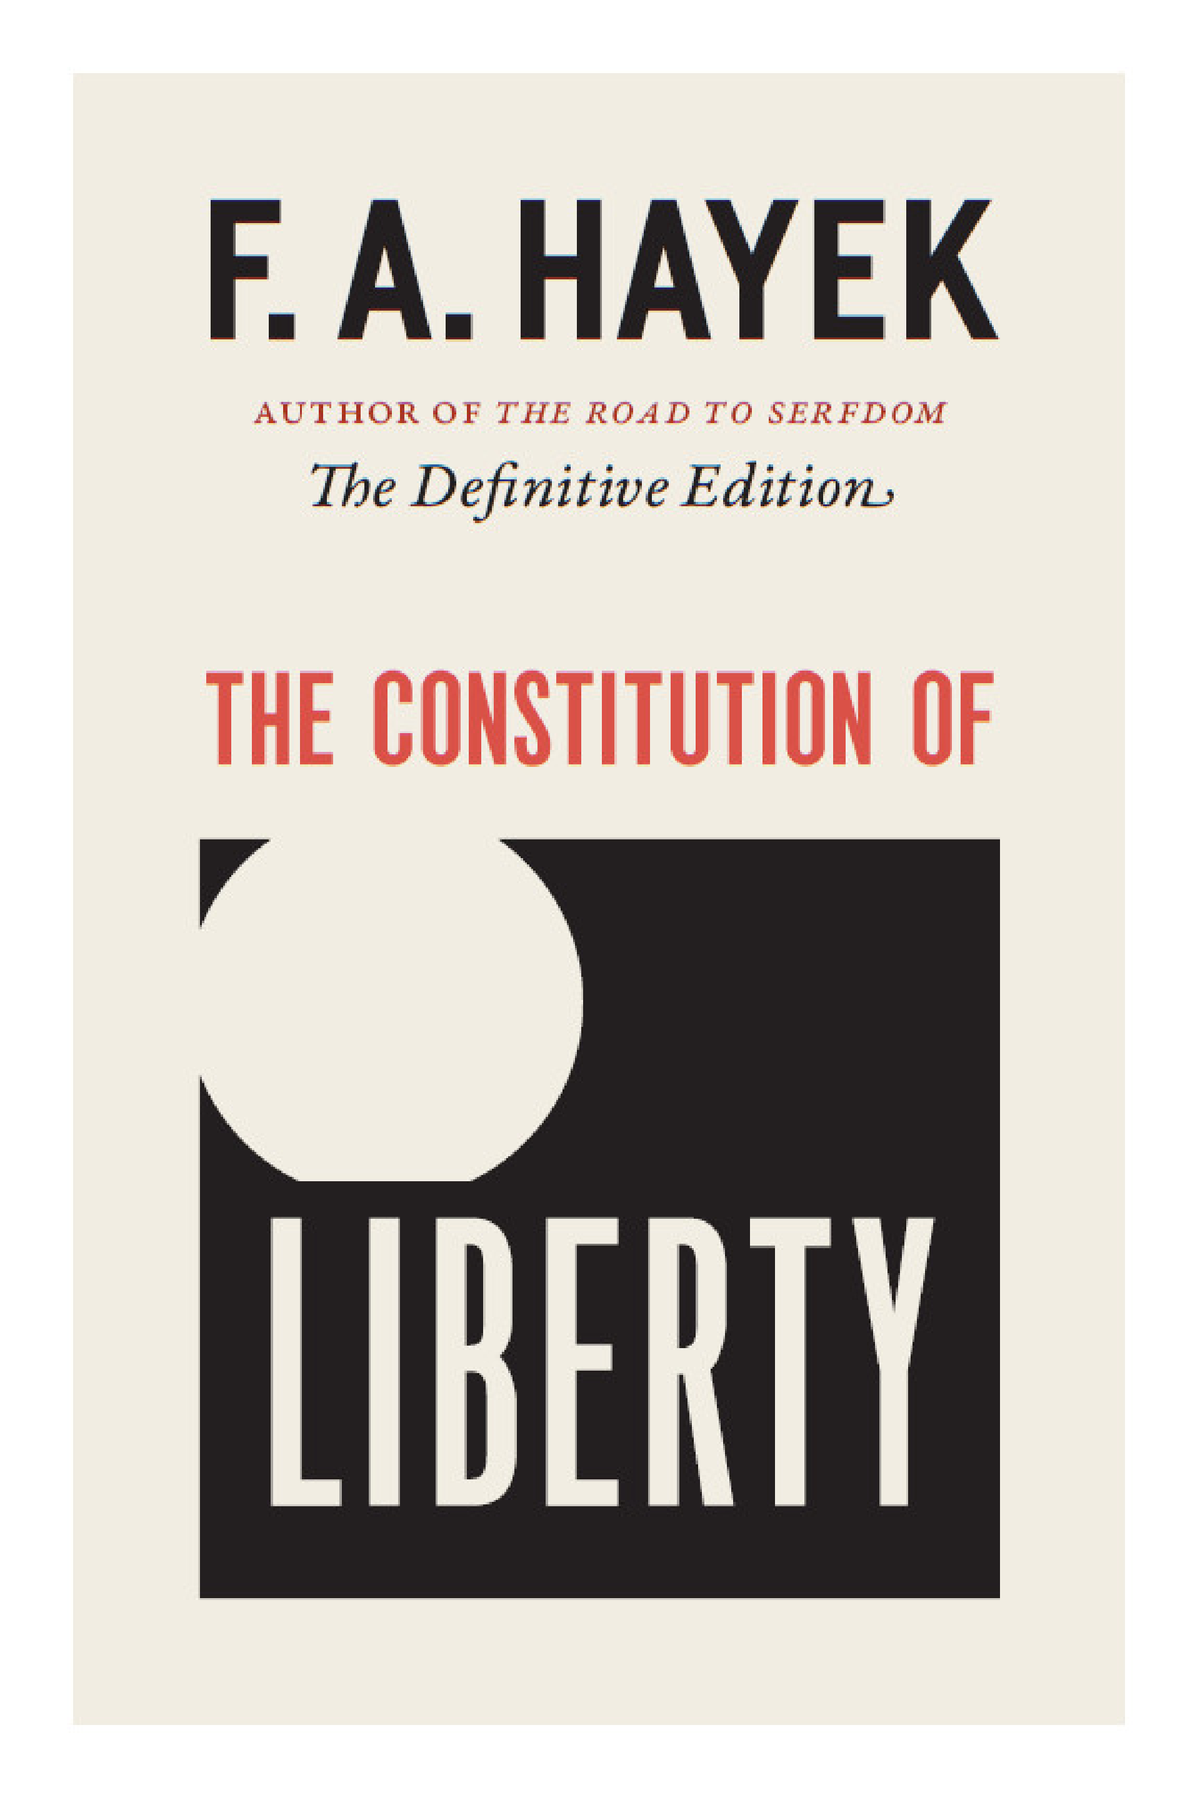 Guide Des Bonnes Manieres Rothschild hayek, f. a. - the constitution of liberty, the definitive